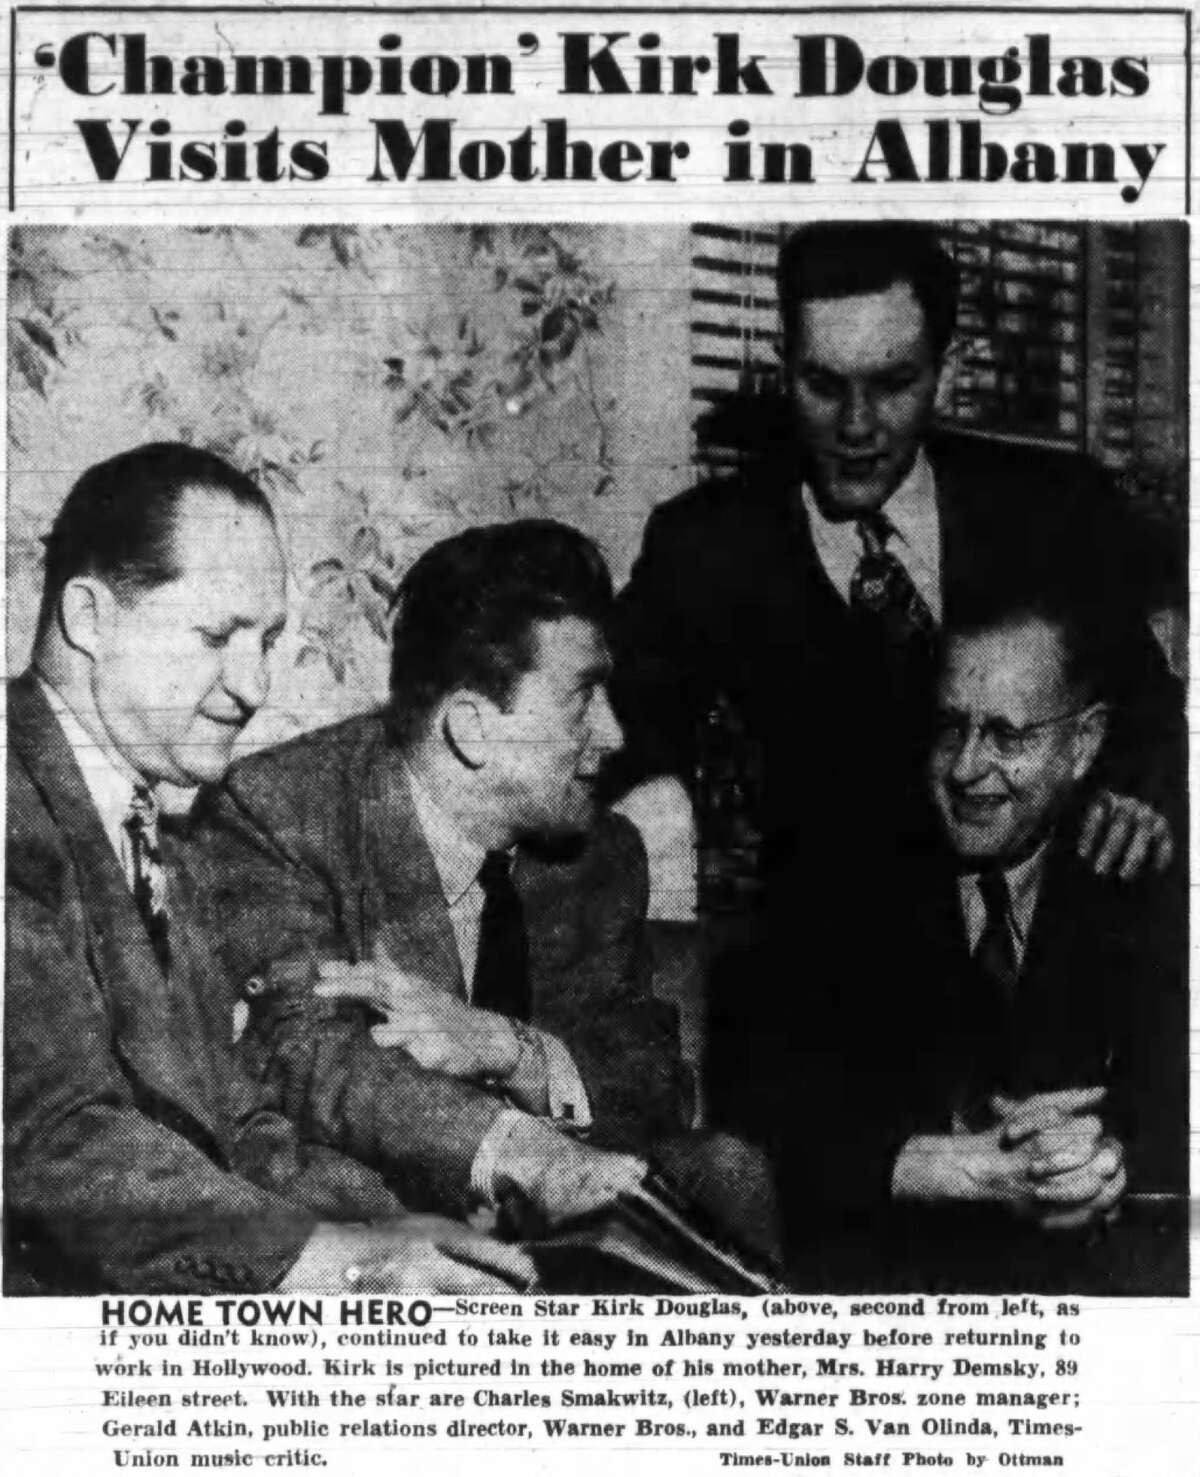 From a story in the April 14, 1949 edition of the Albany Times Union: